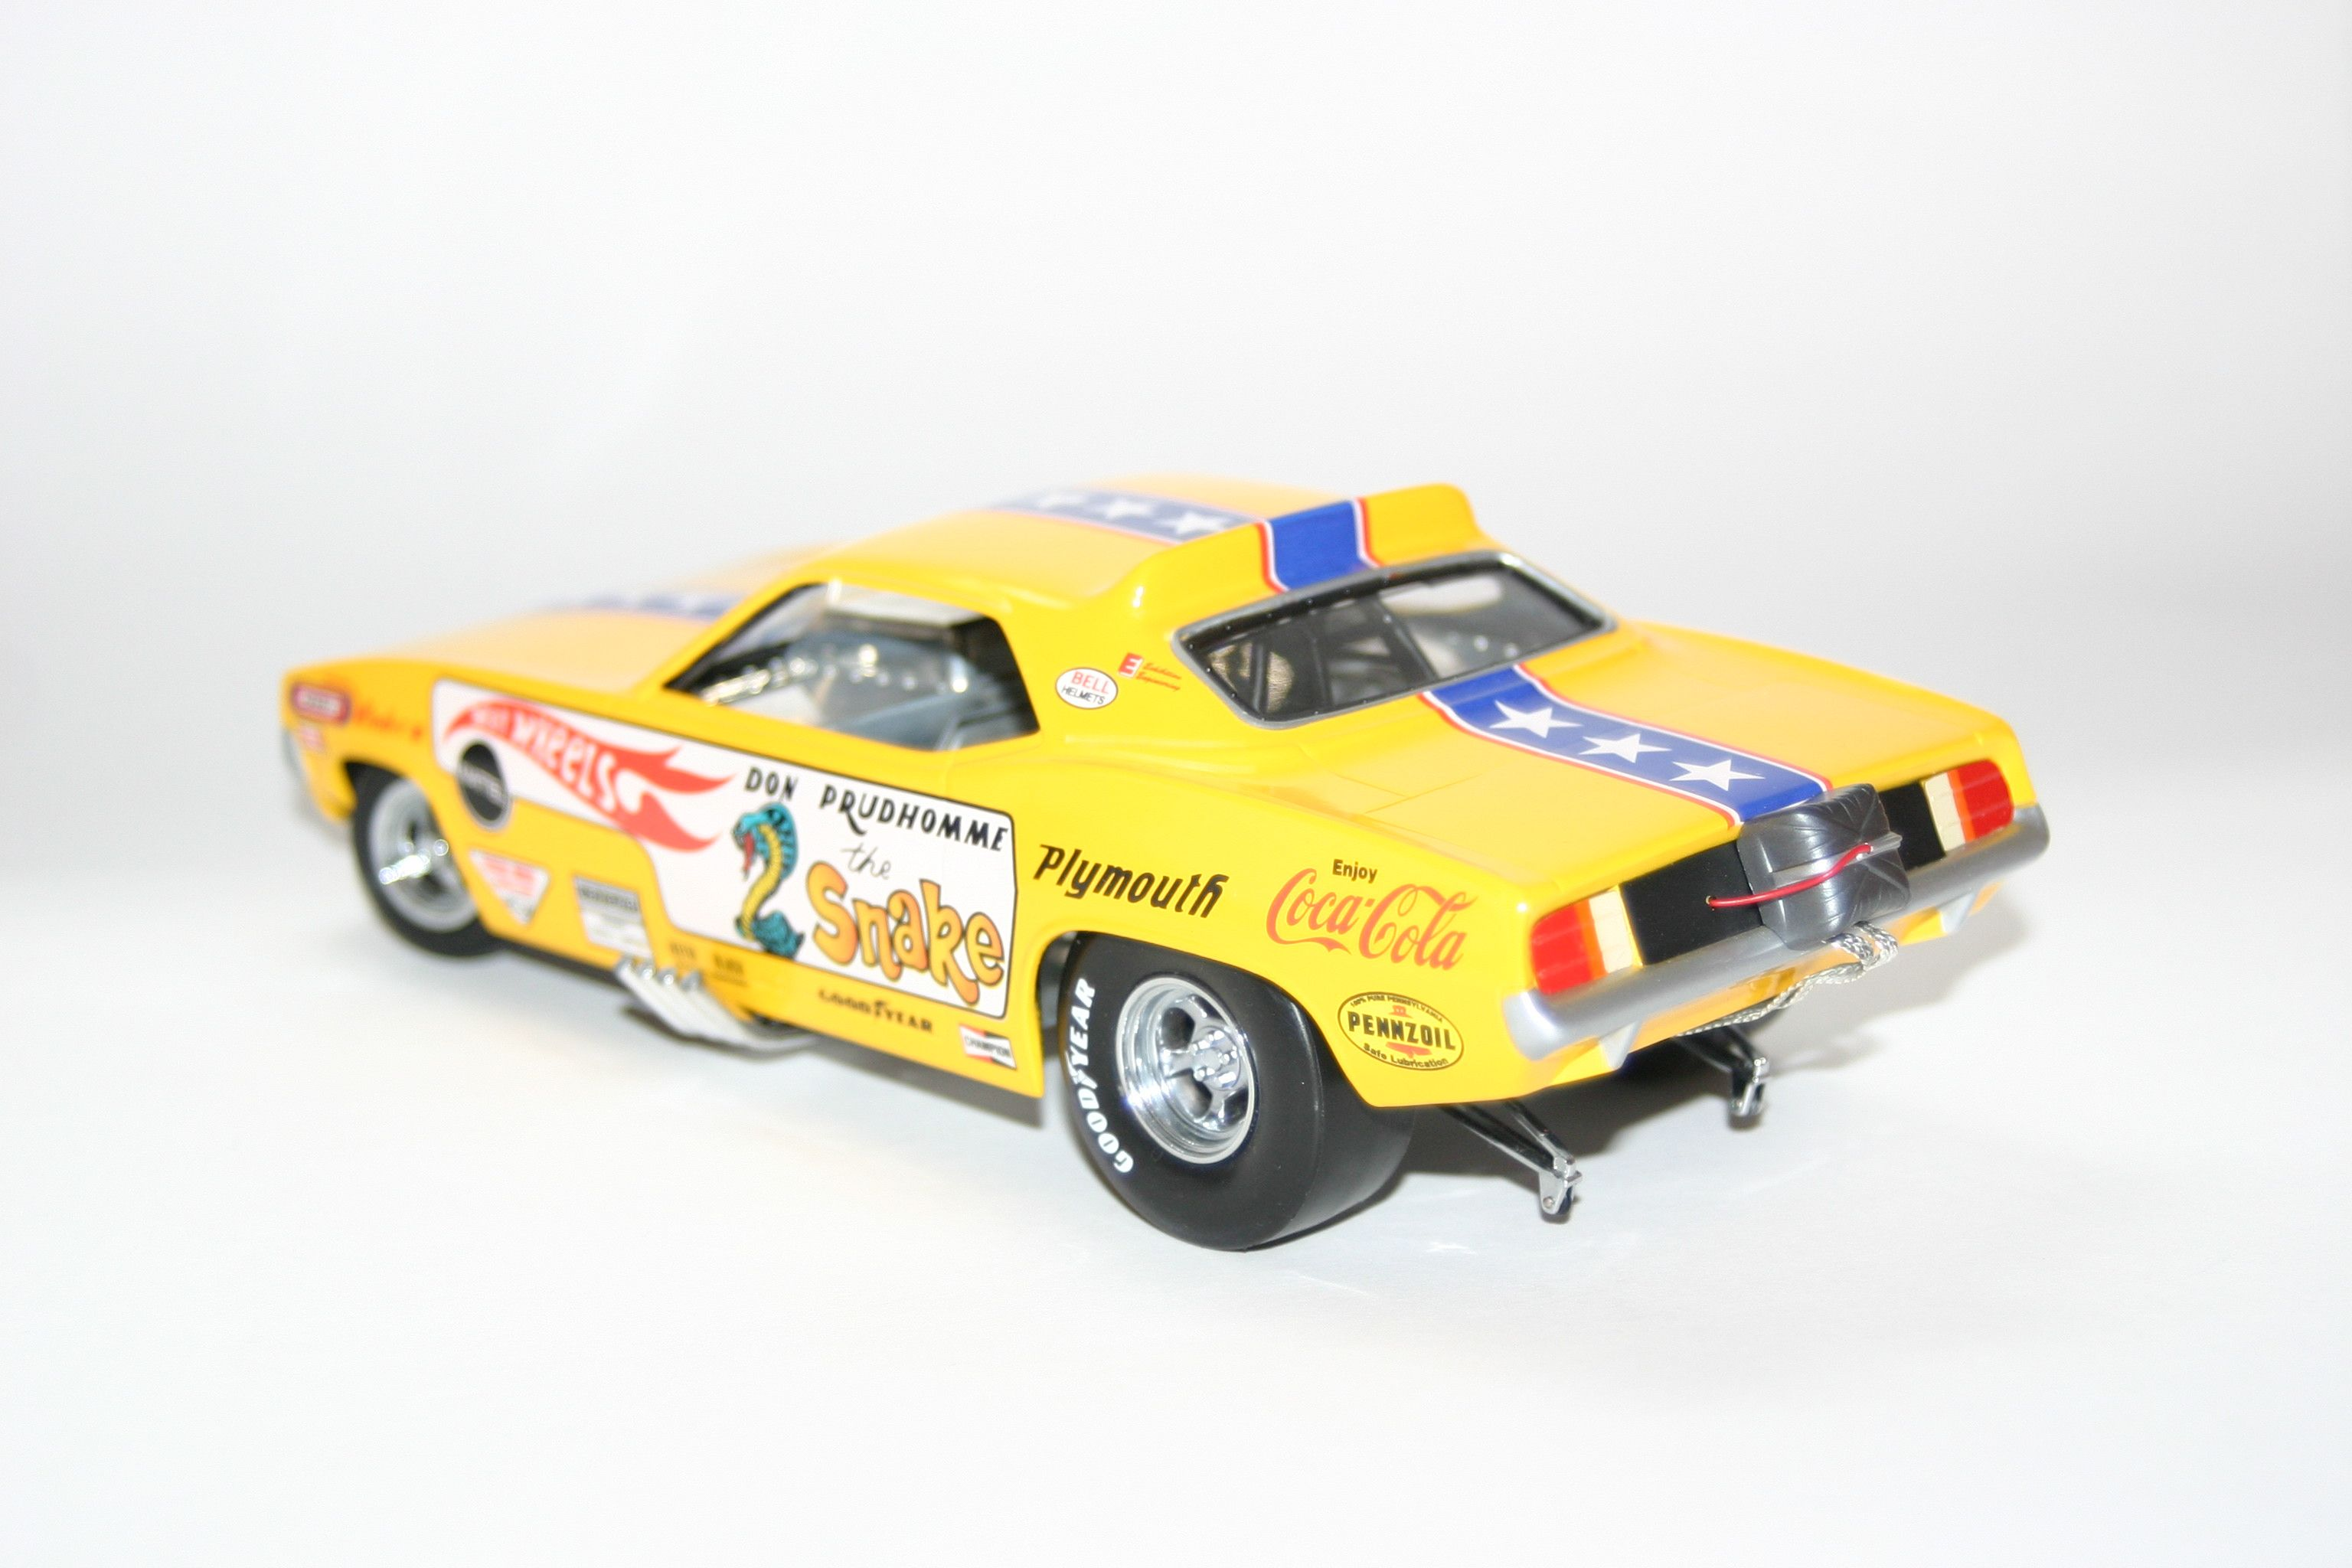 Plymouth Barracuda Snake Funny Car Dragster 1 24 Scale by Hot Wheels